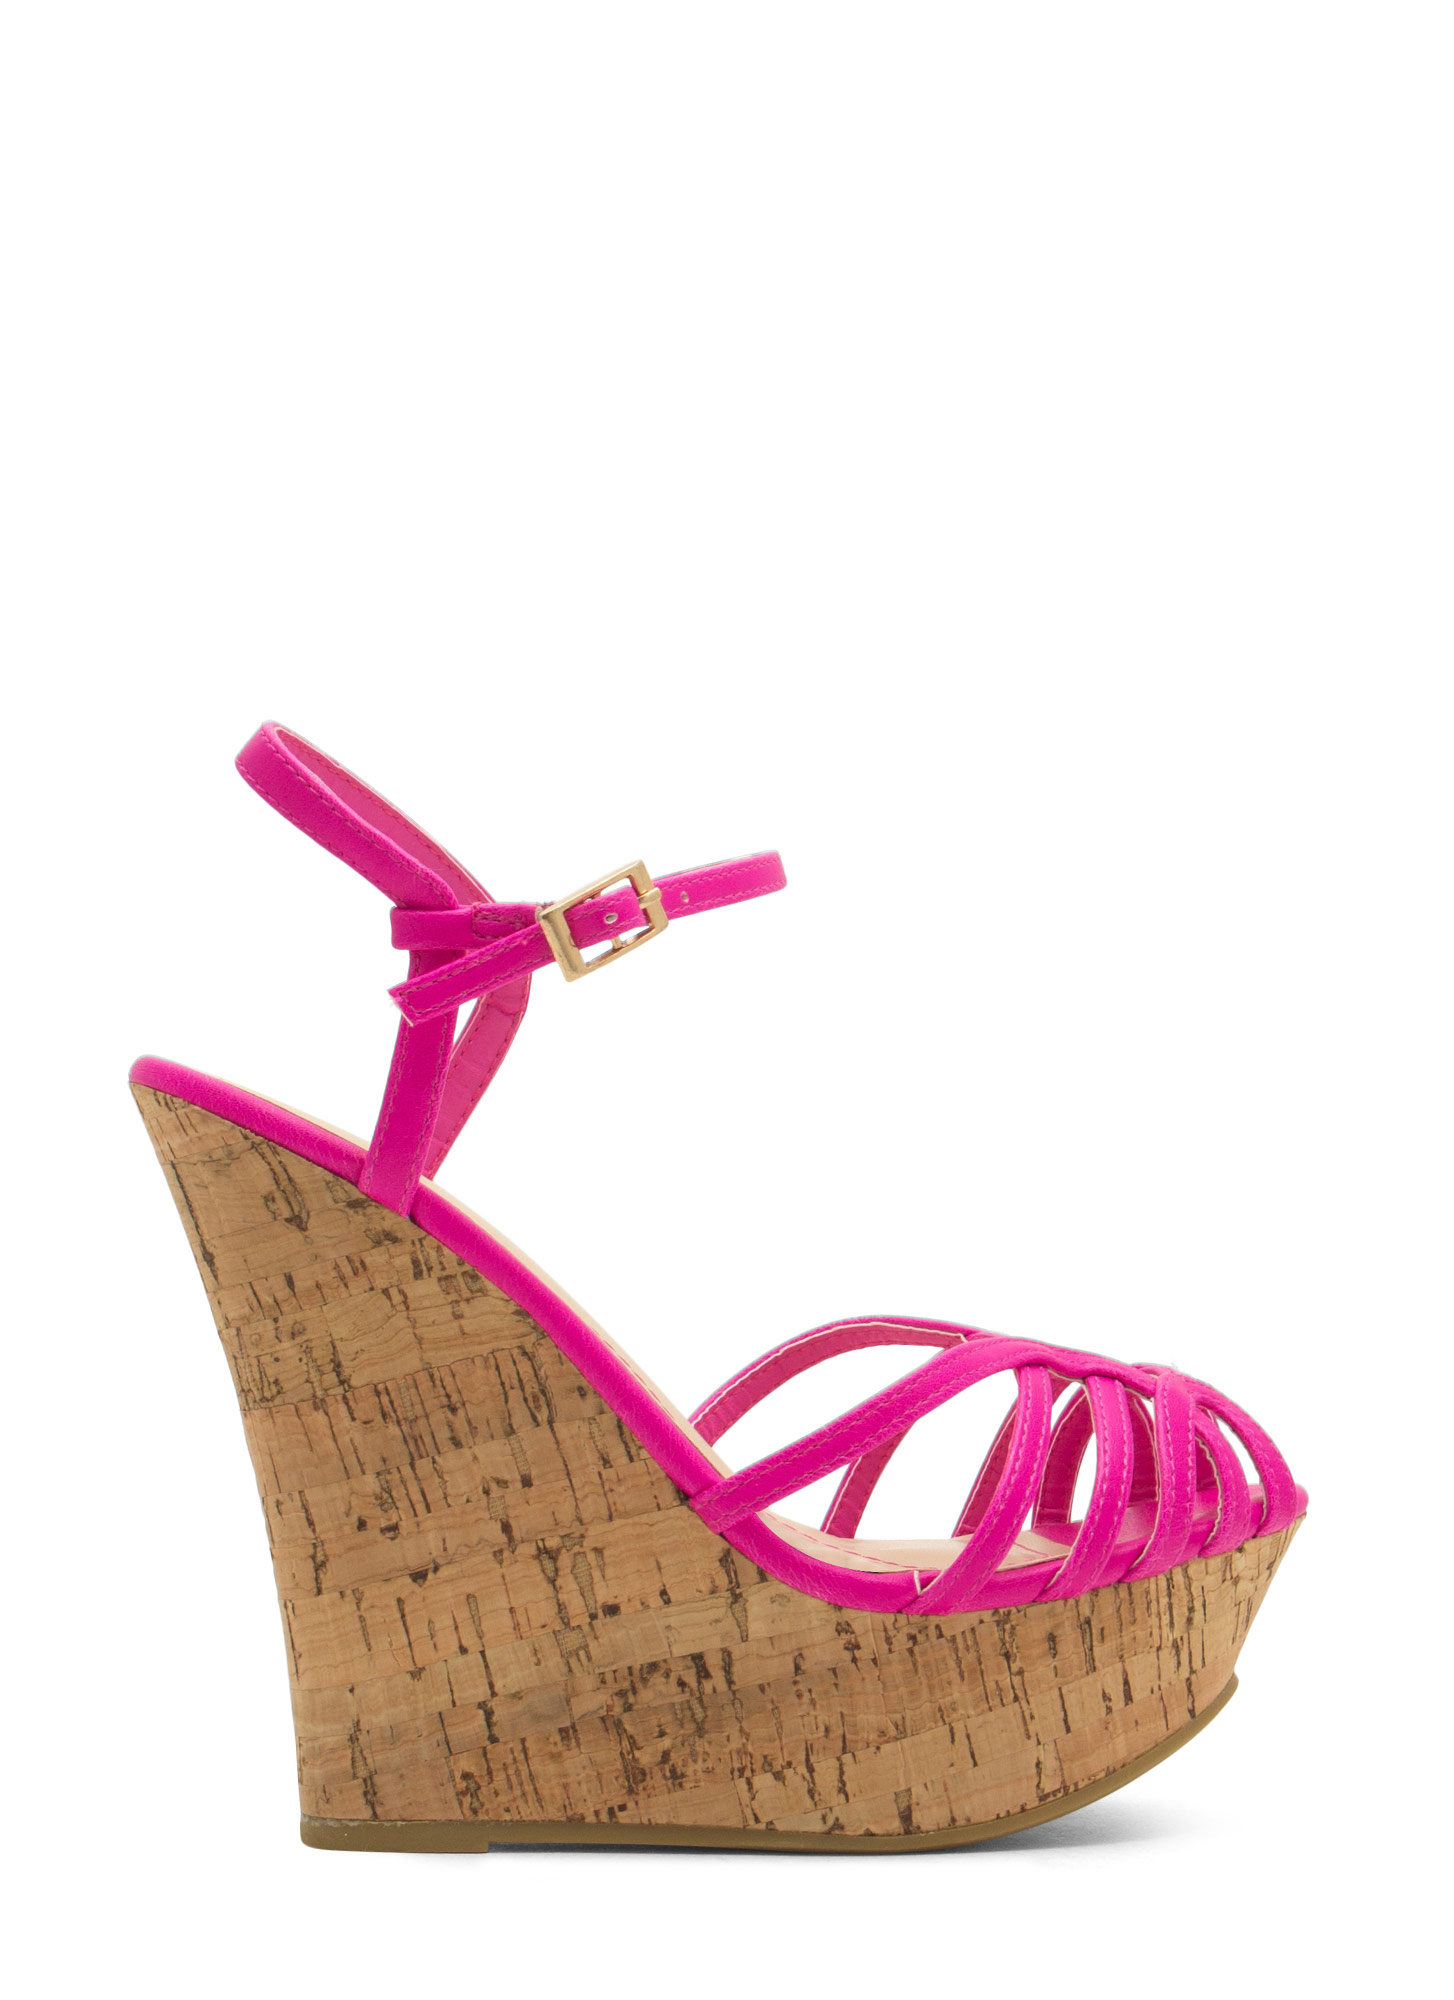 Corked 'N Caged Platform Wedges MAGENTA